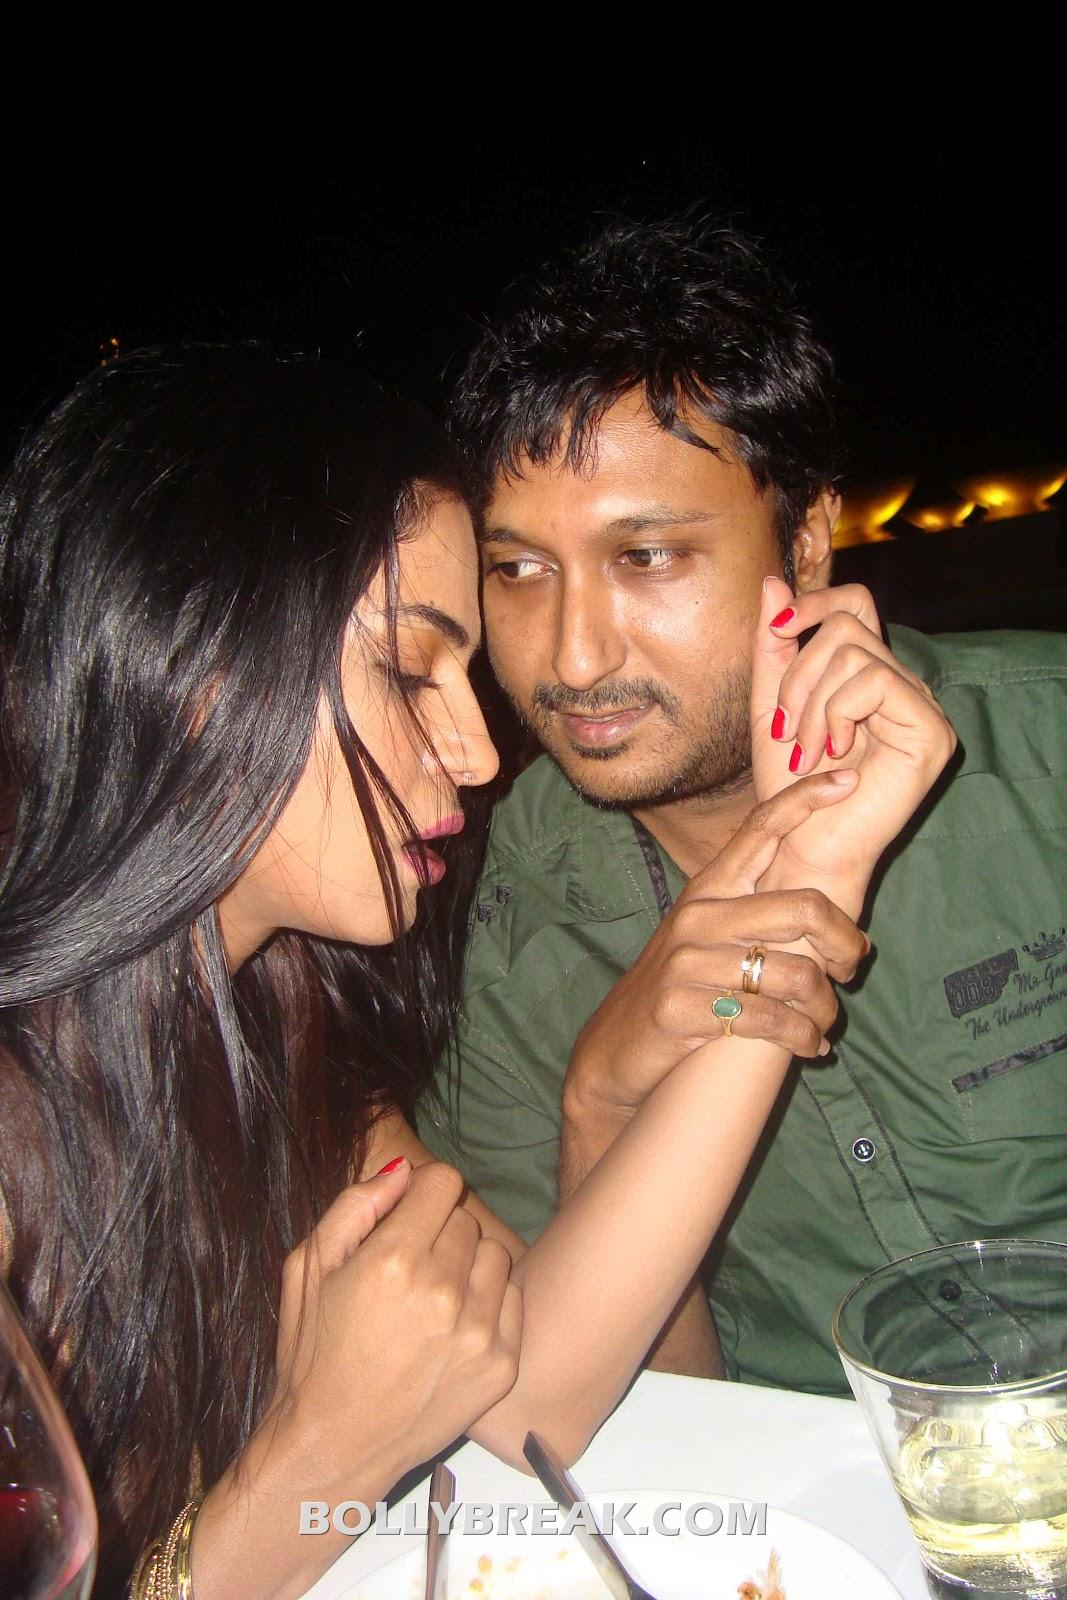  Veena Malik Hemant Madhukar  -  Veena Malik Hemant Madhukar Leaked Private Pics